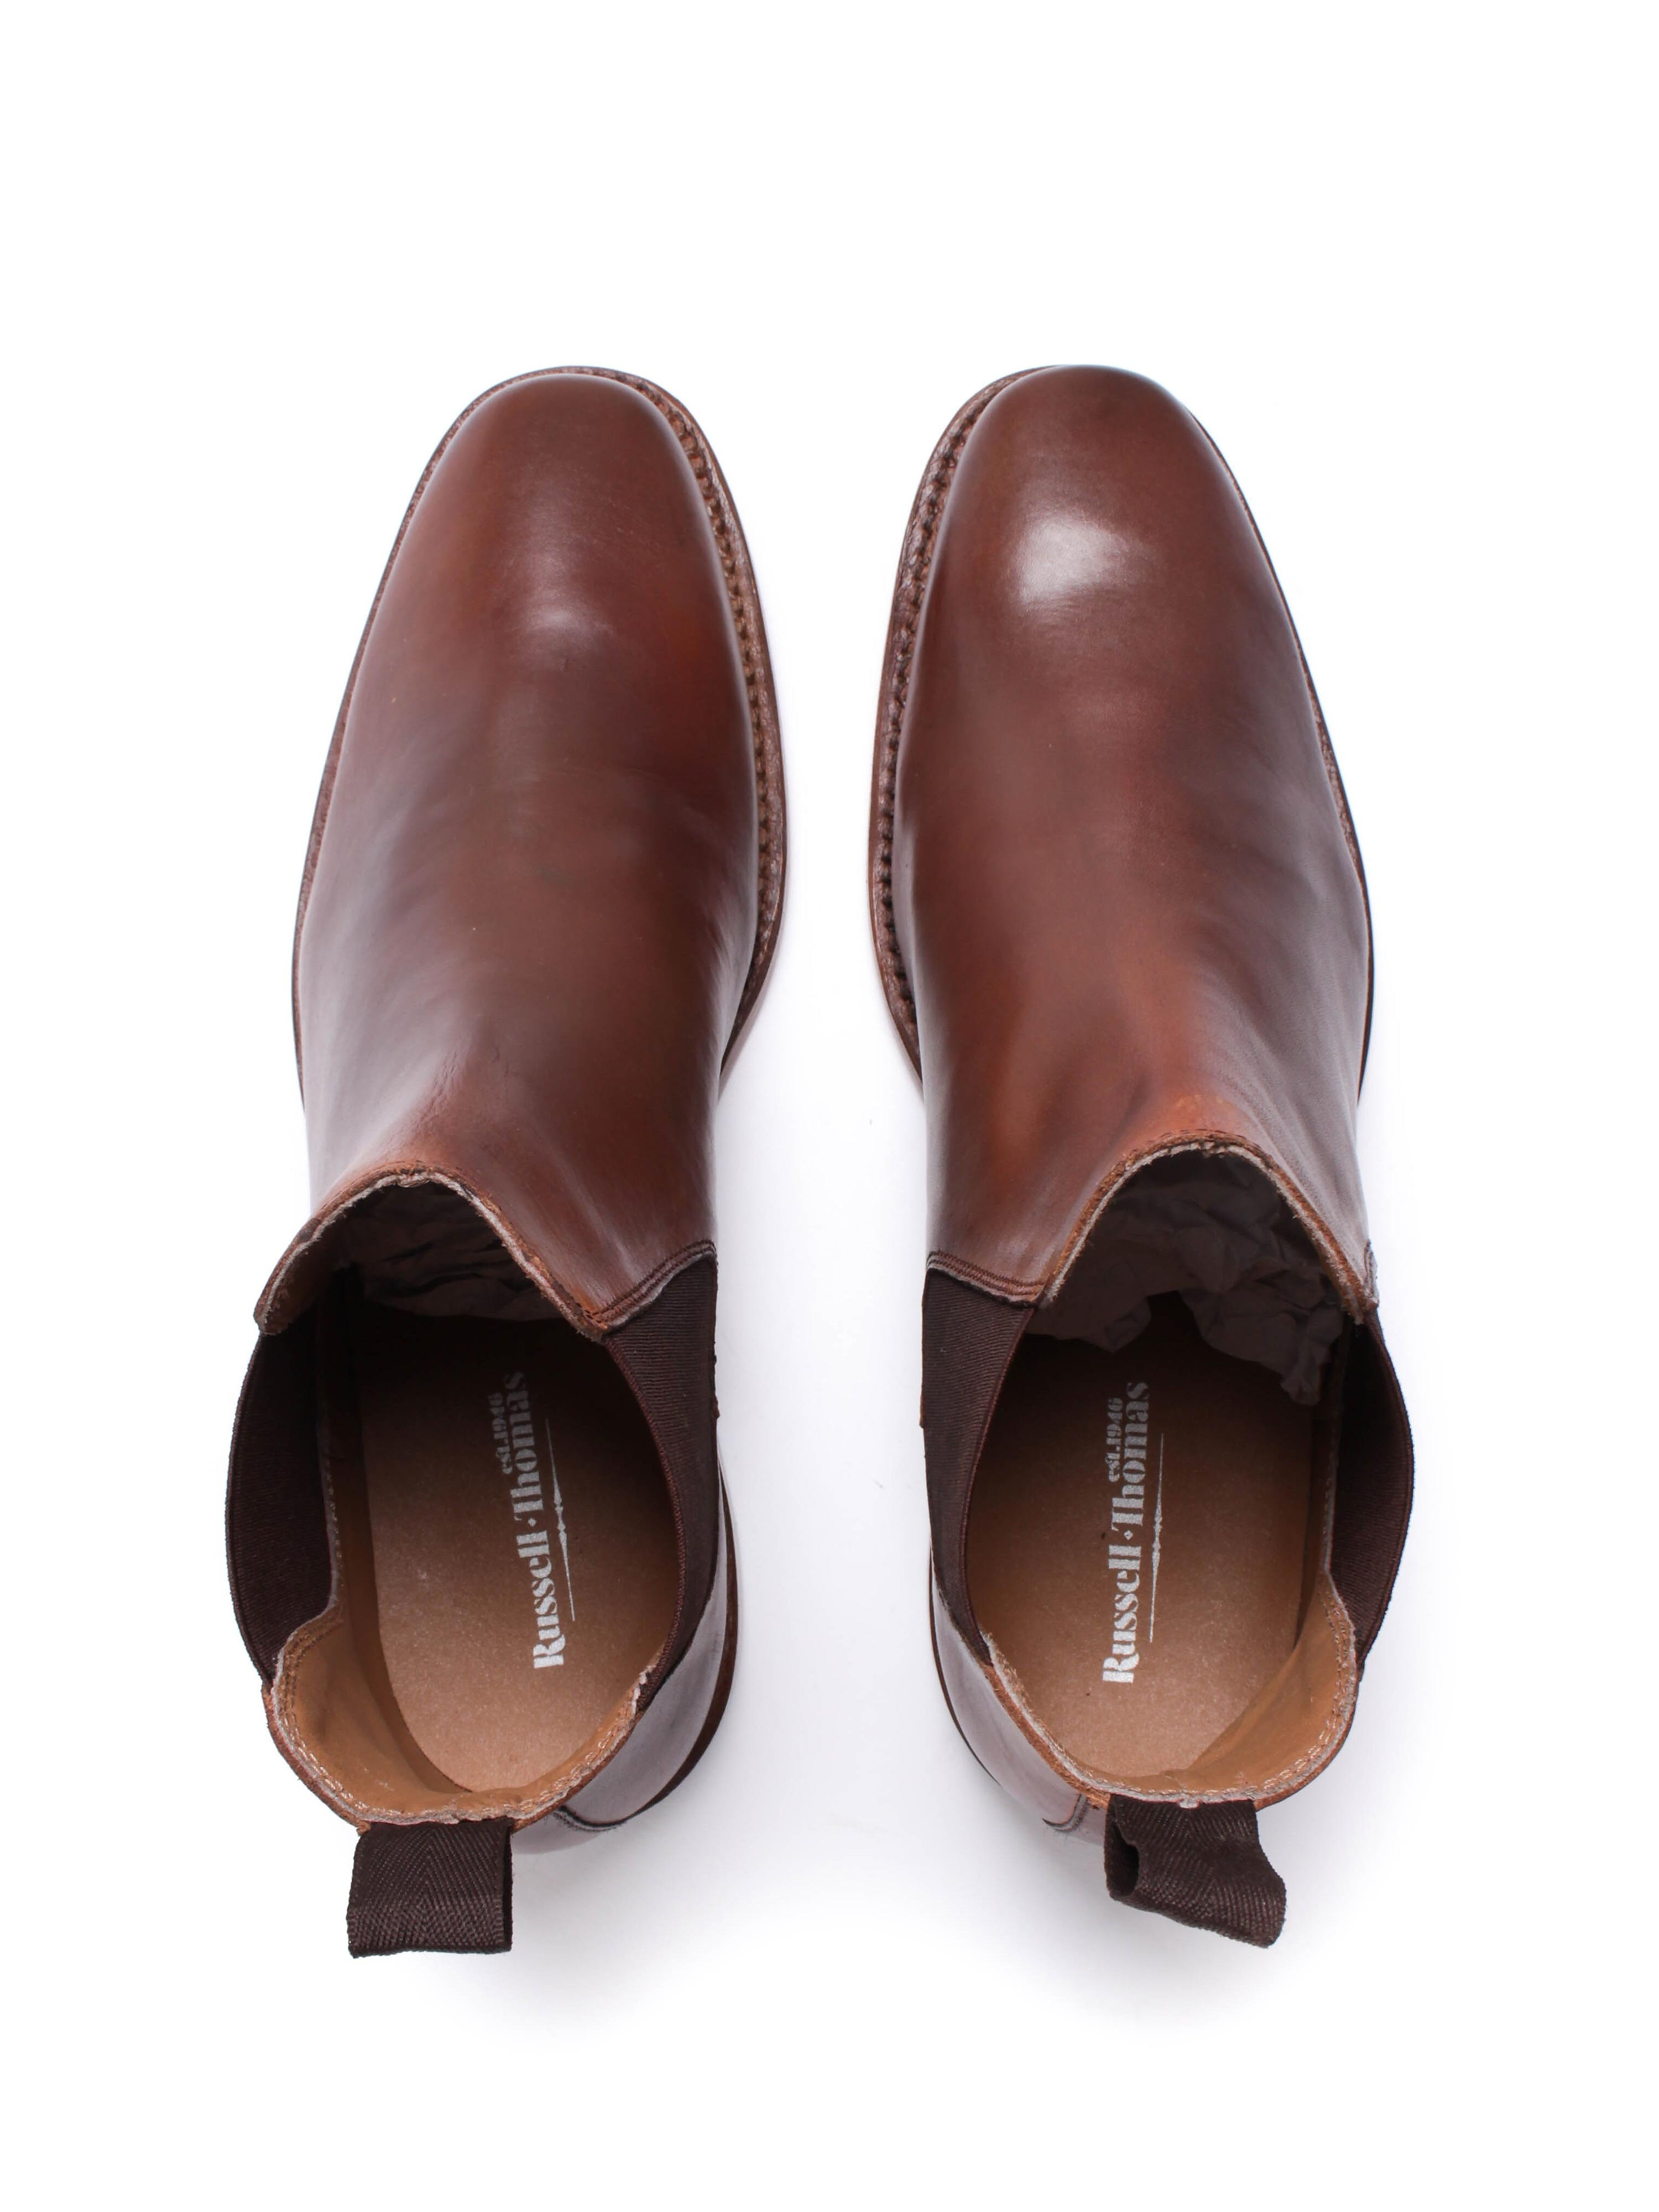 Russell Thomas Mens Antique Brown Leather Chelsea Boots